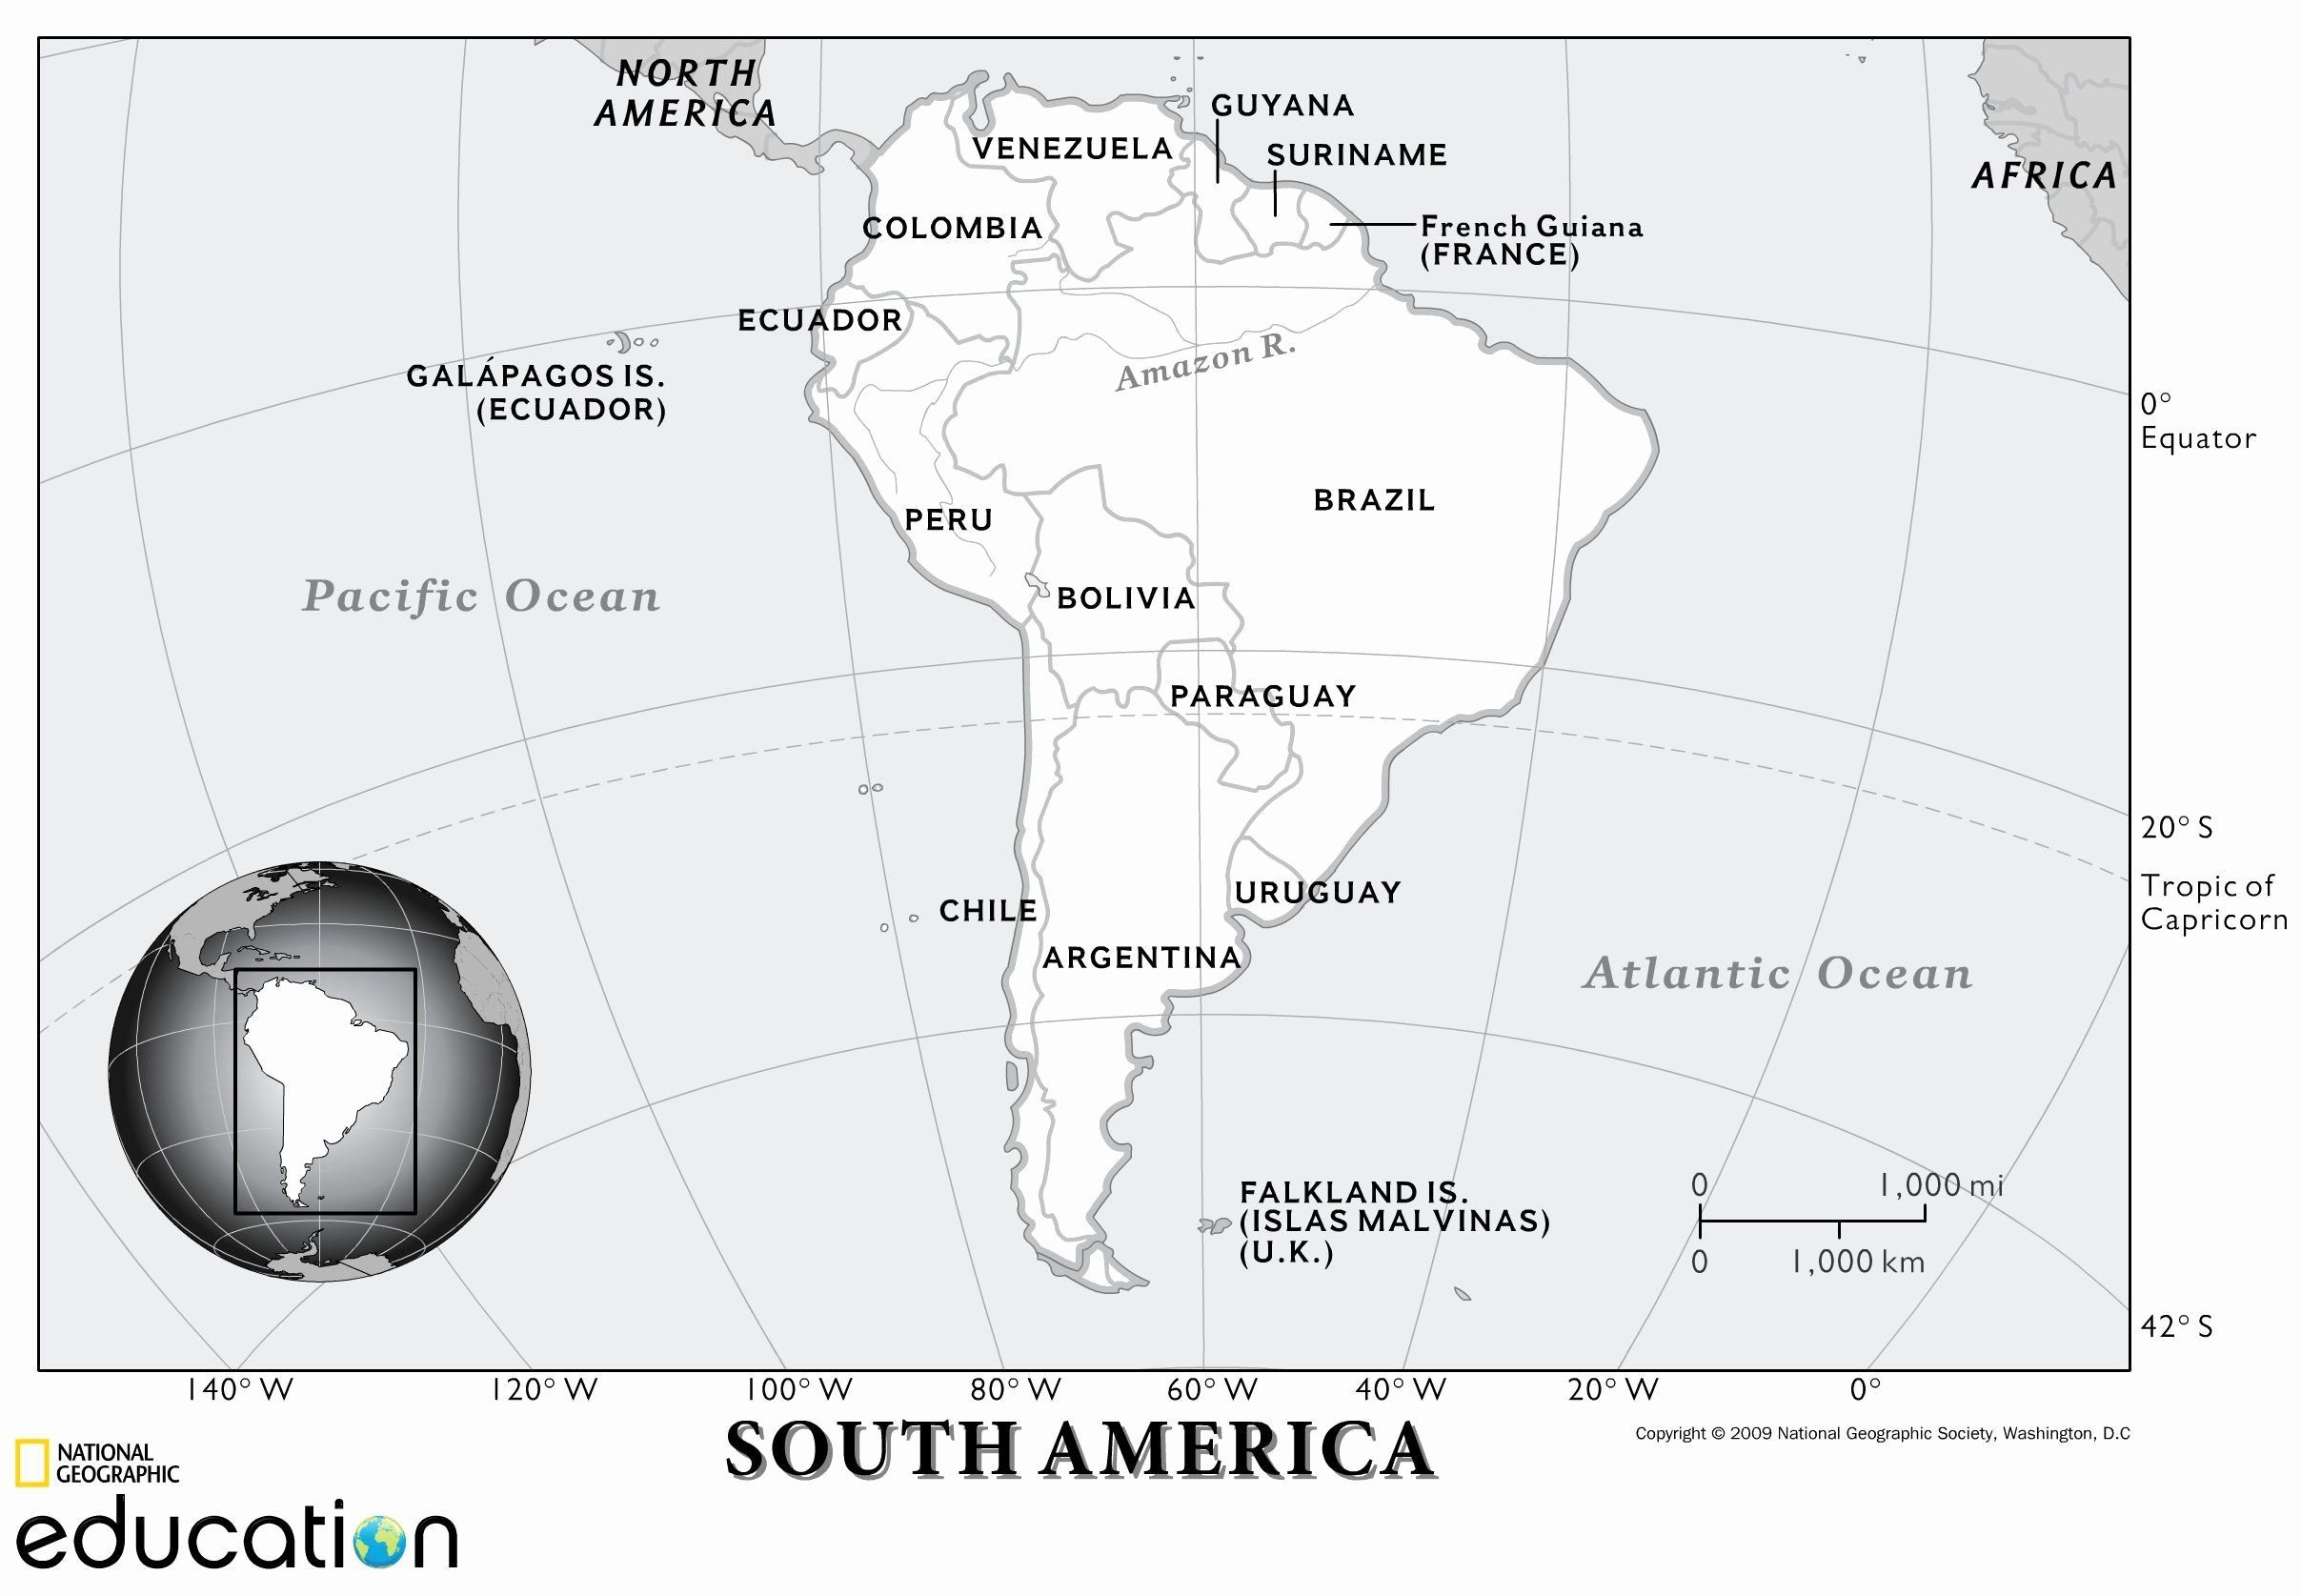 South America Map Coloring Page Inspirational Political North America Maps And A City S South America Map North America Map Physical Geography